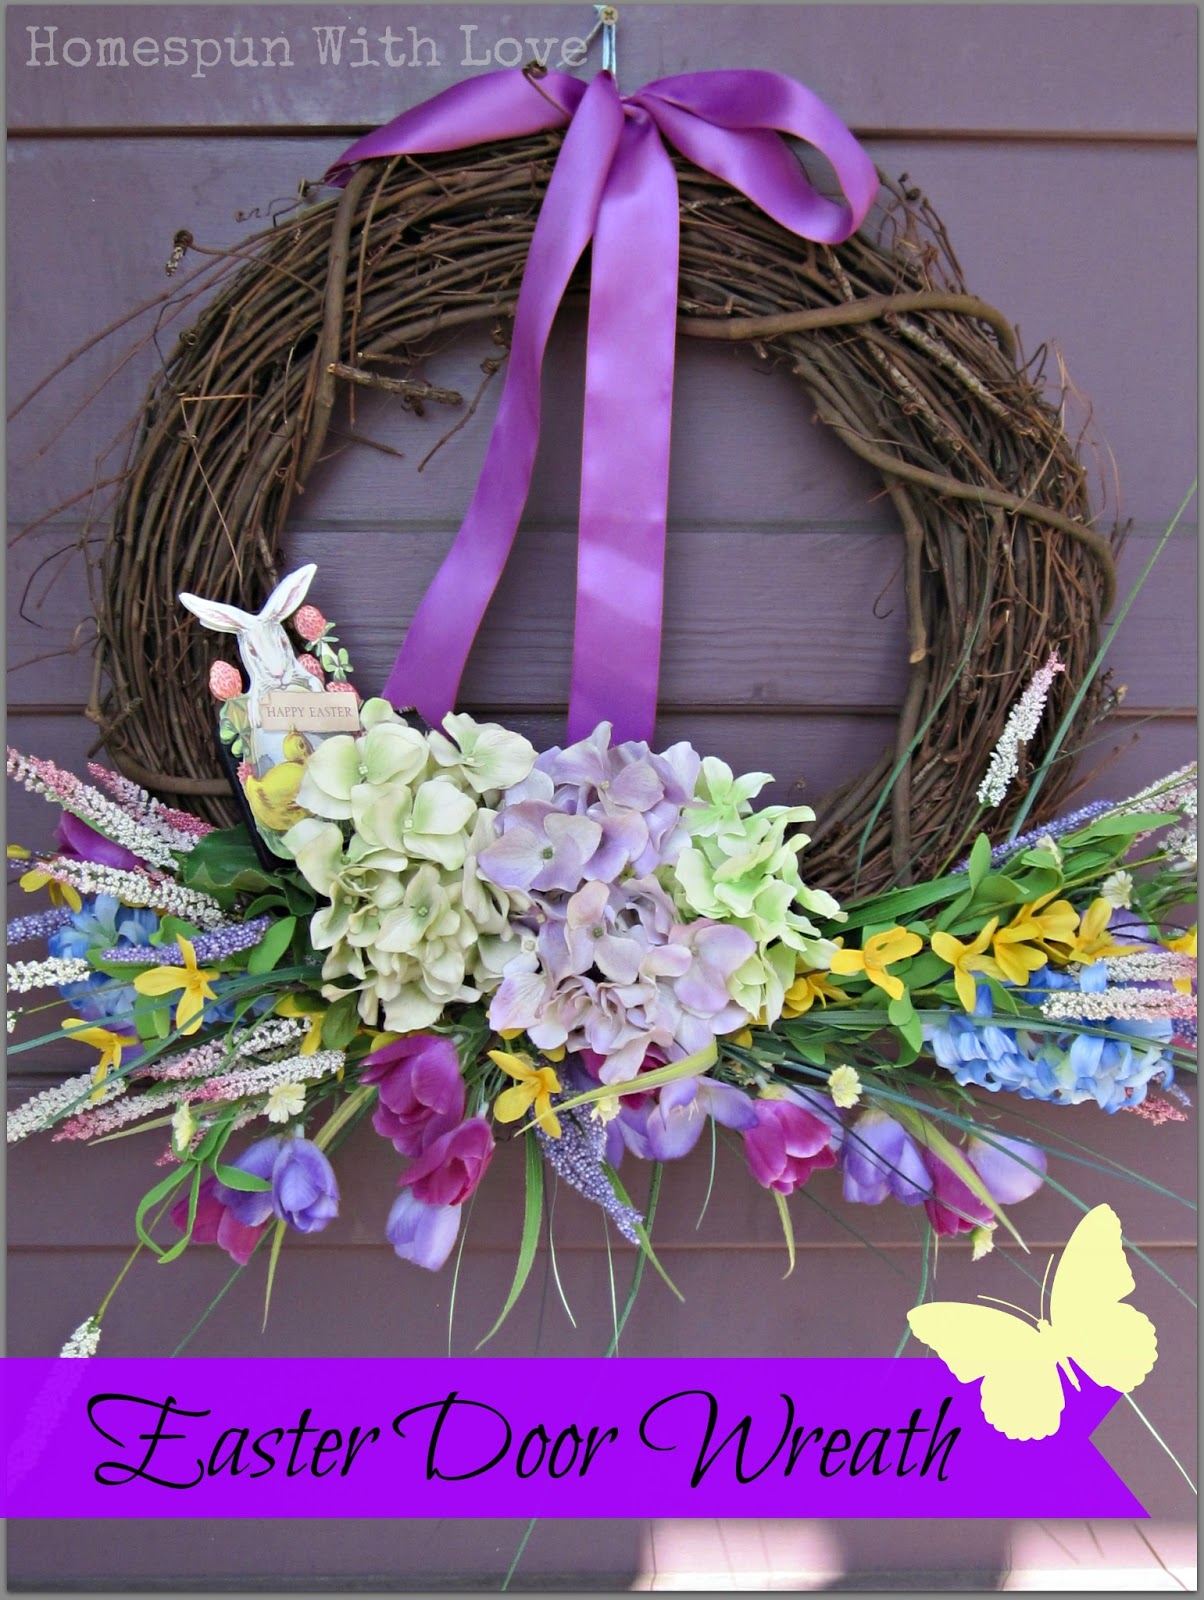 Homespun With Love: Easter Door Wreath